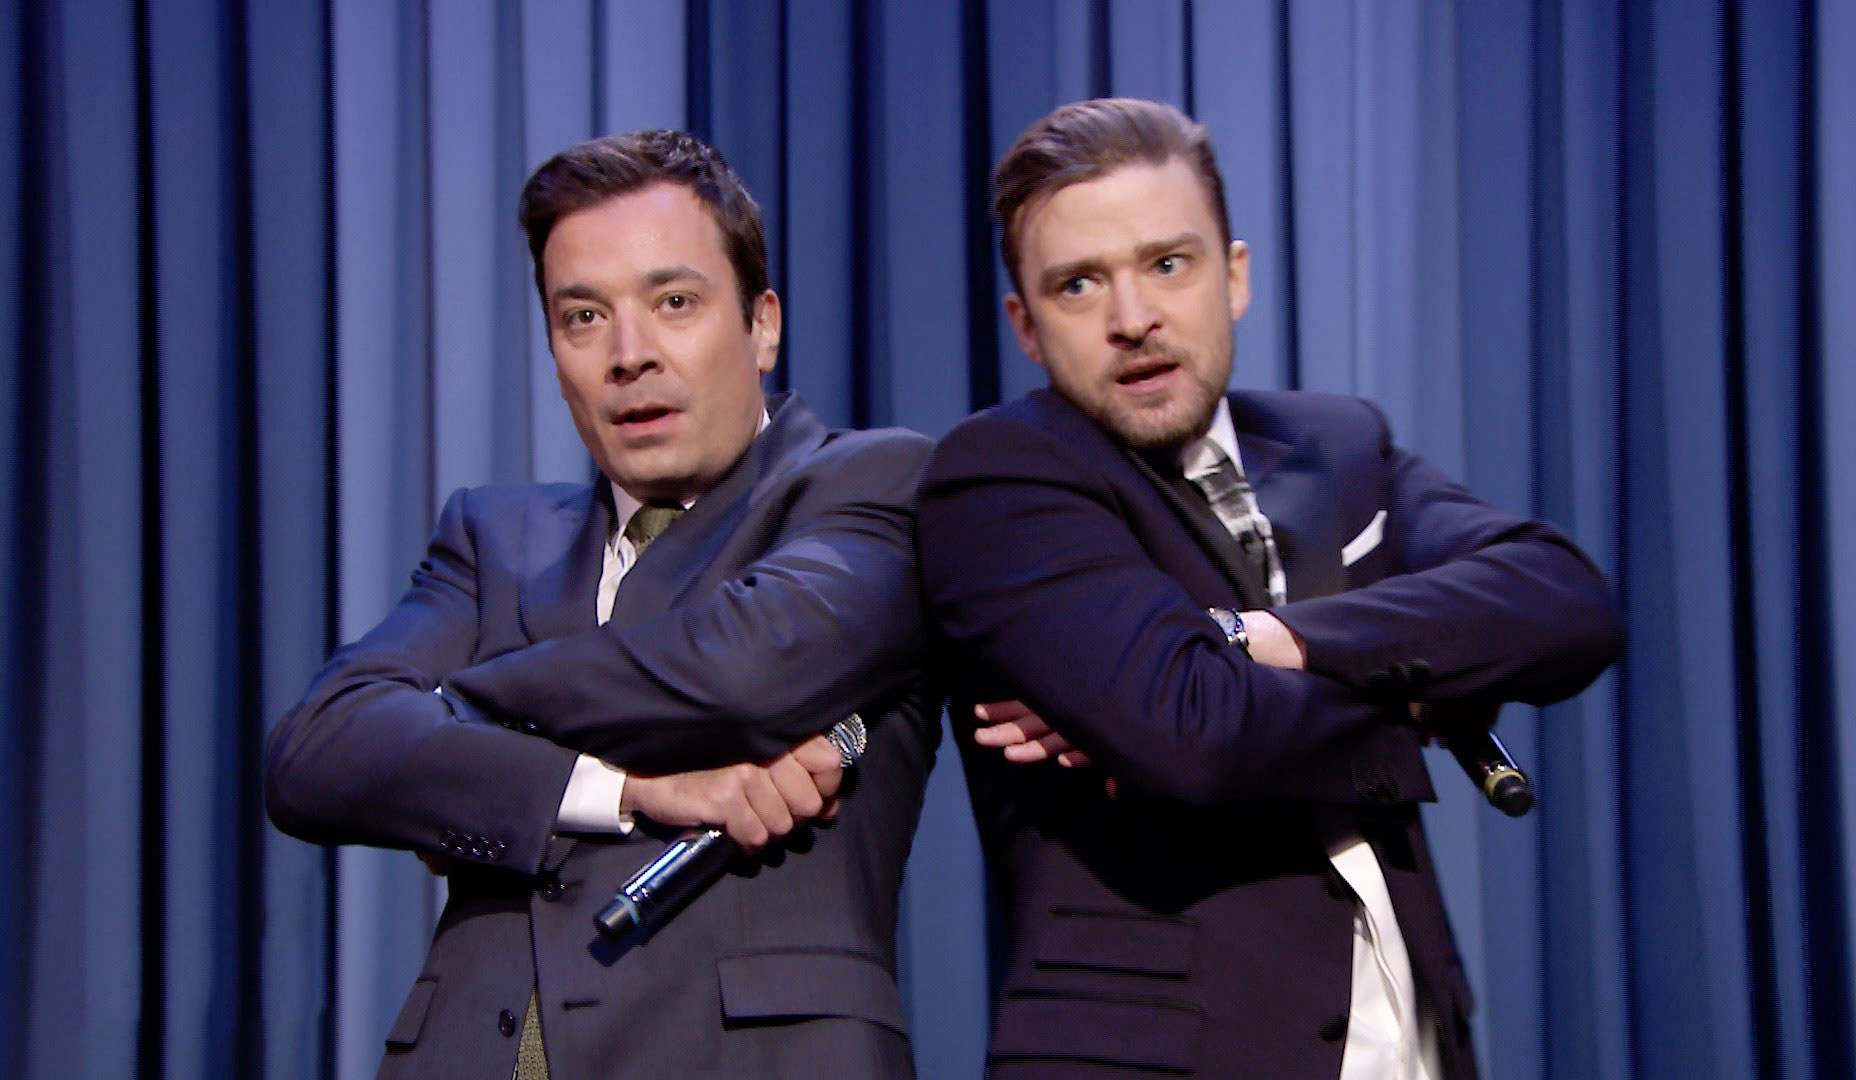 Photo of Jimmy Fallon & his friend musician  Justin Timberlake - Longtime